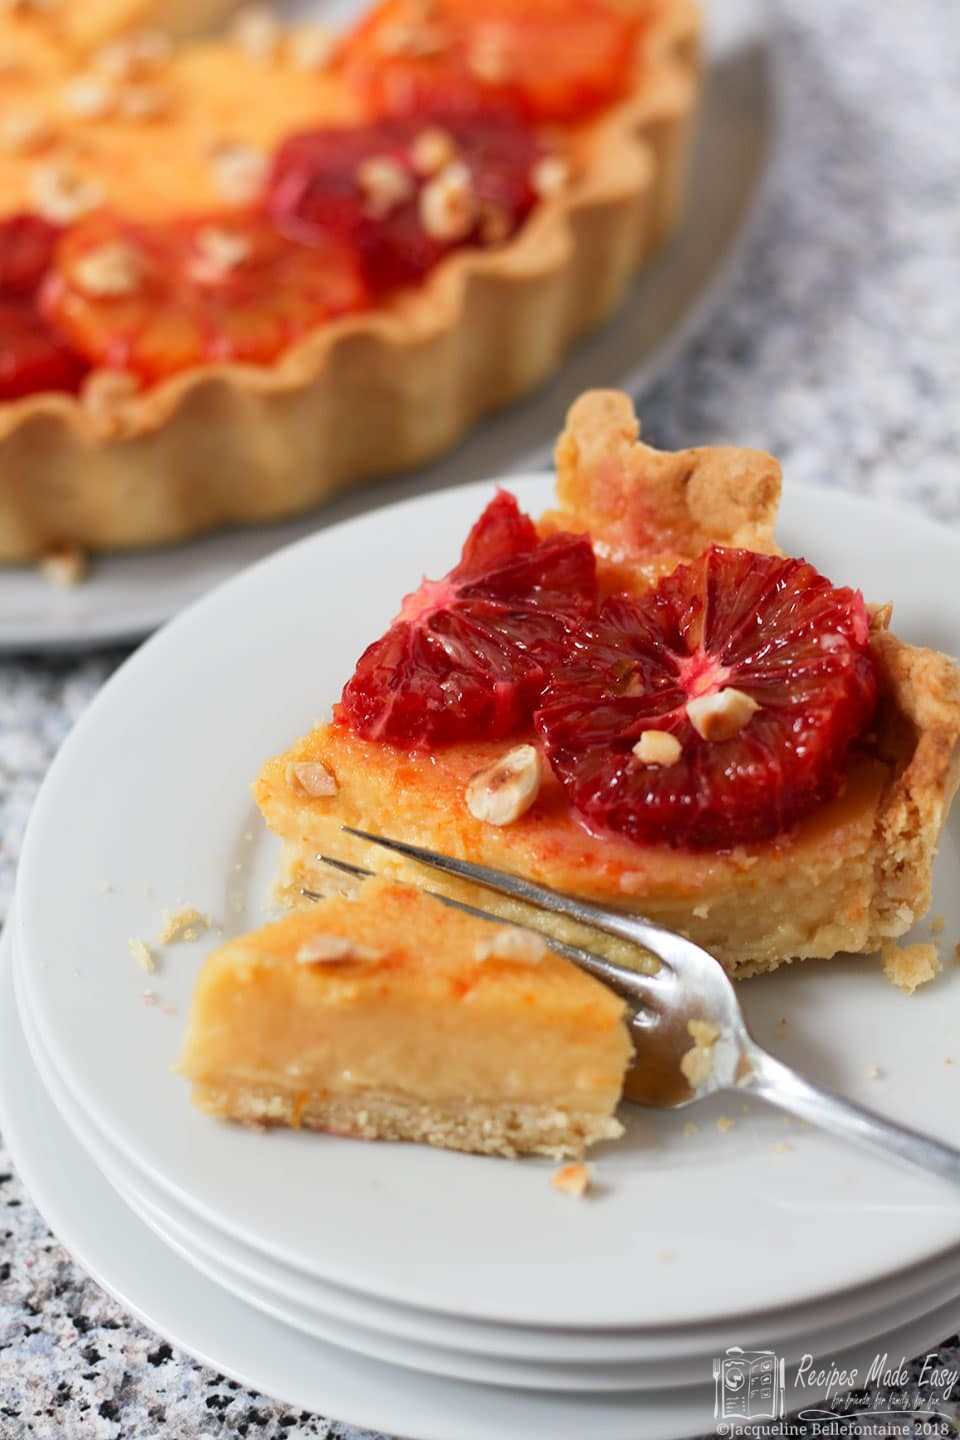 Recipes Made Easy Seville orange tart with blood oranges and hazelnuts